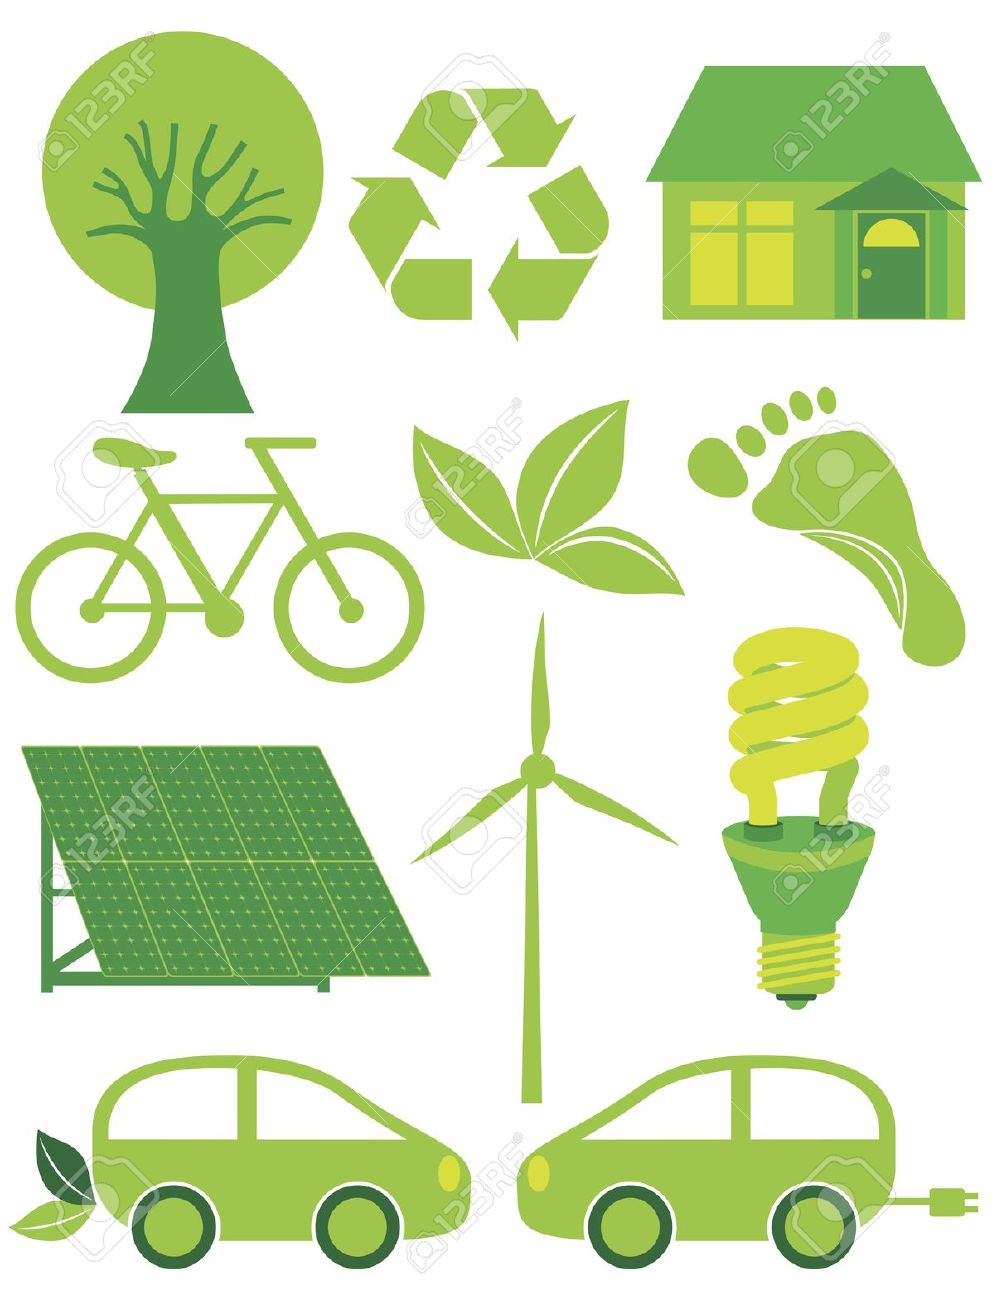 Go Green Eco Symbols With Tree Recycle Leaf Footprint Bicycle.